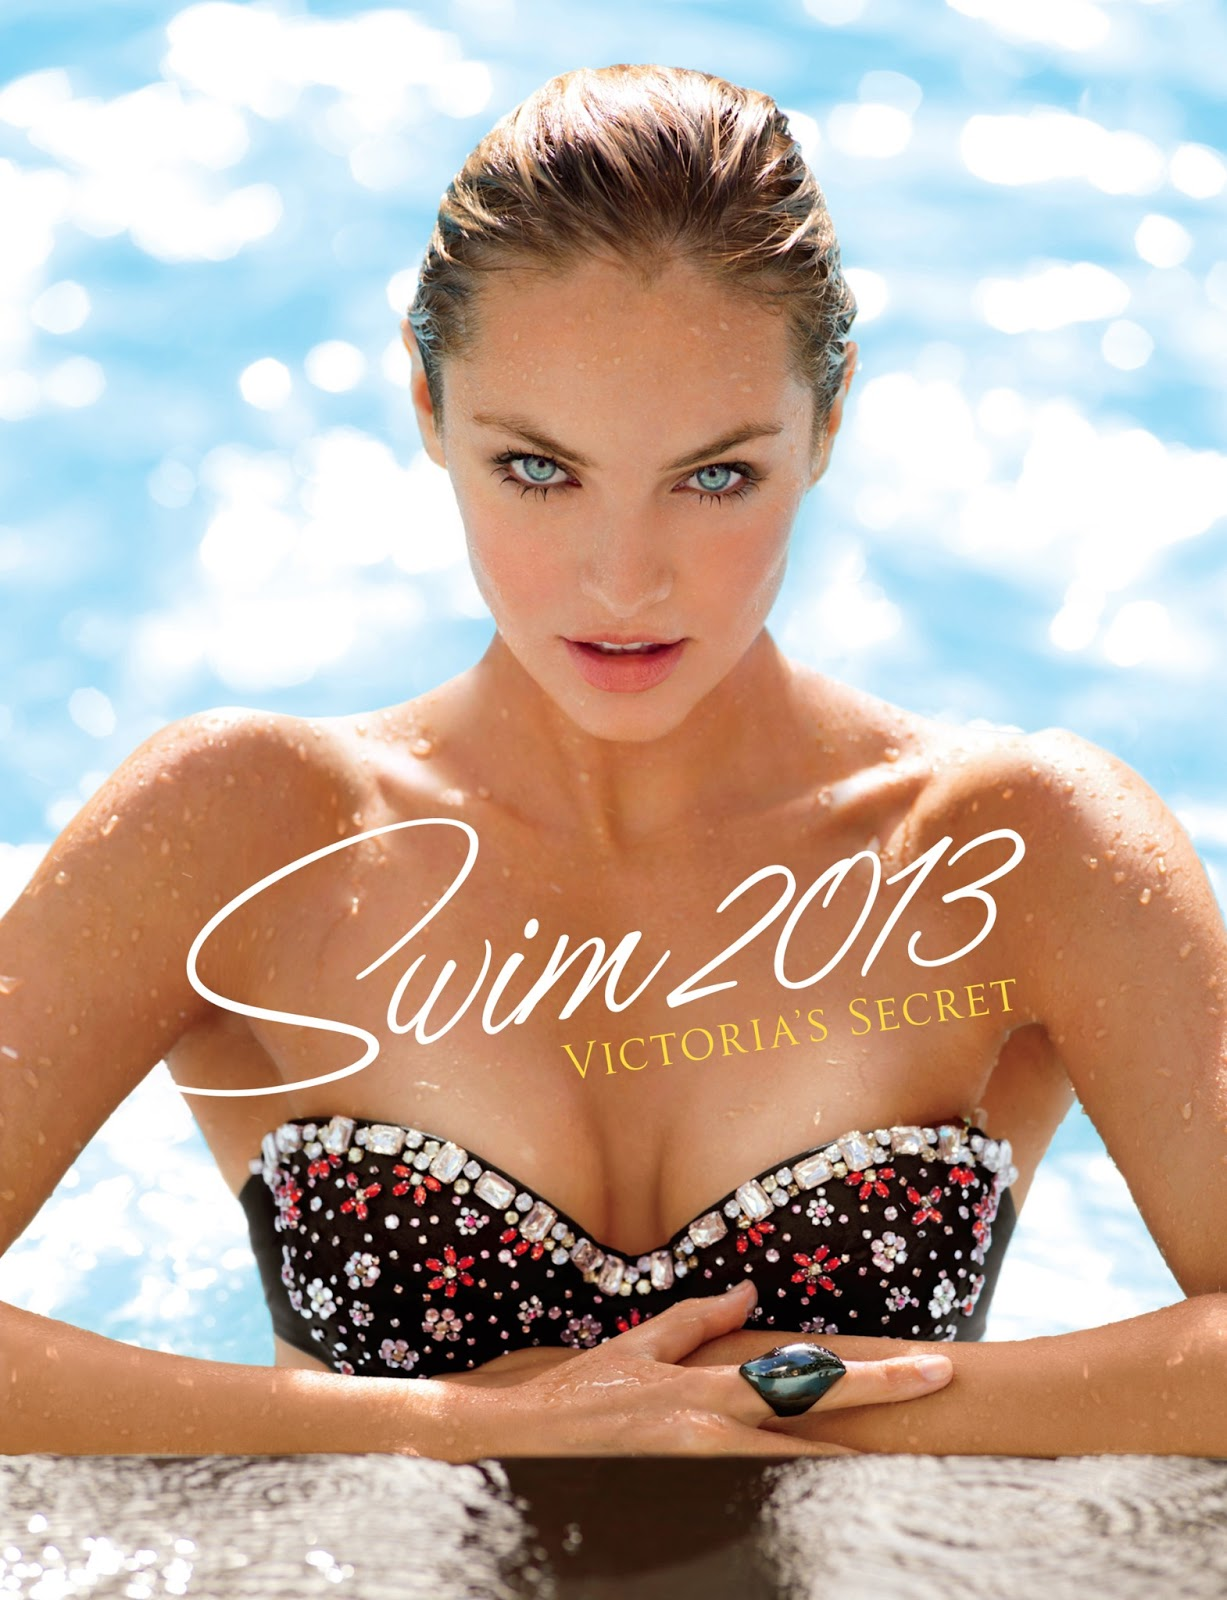 http://4.bp.blogspot.com/-p7oh-oMJAug/UOgbDe1mxcI/AAAAAAAAGKQ/ZpedKOTirBw/s1600/swim-2013-candice-swanepoel-very-sexy-embellished-bandeau-cover-victorias-secret-hi-res.jpg